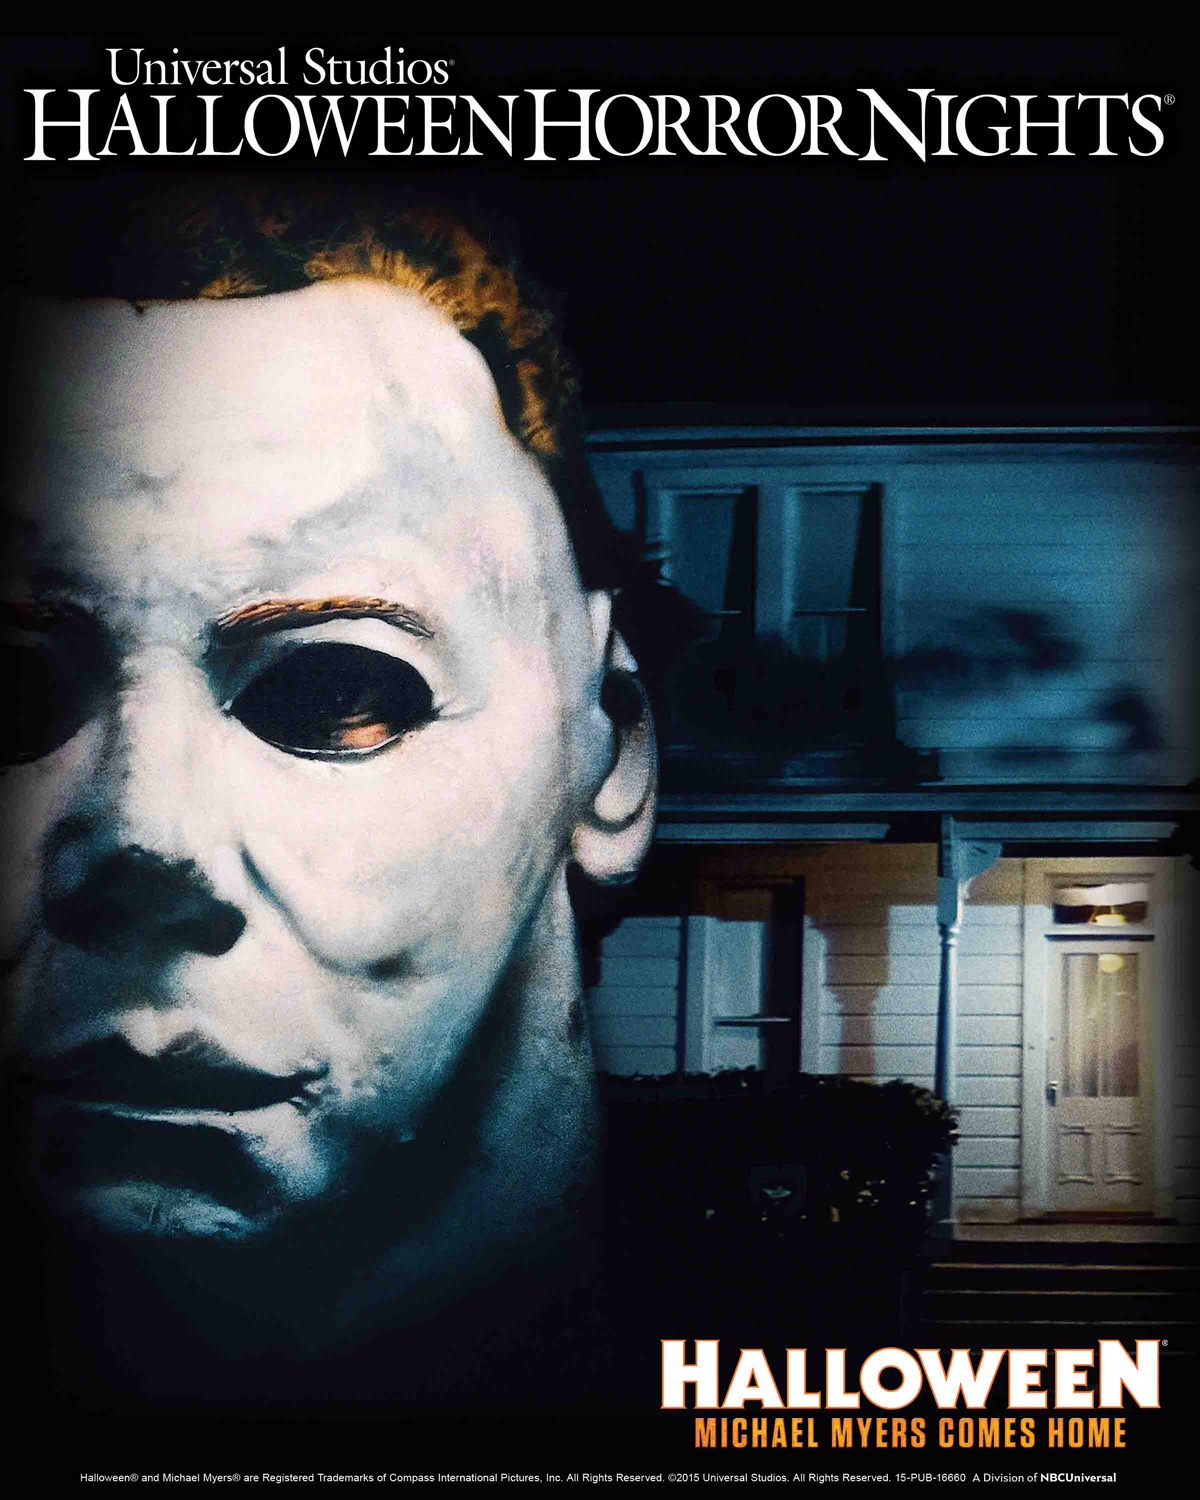 Michael Myers Comes Home Slashes Through Universal Studios ...